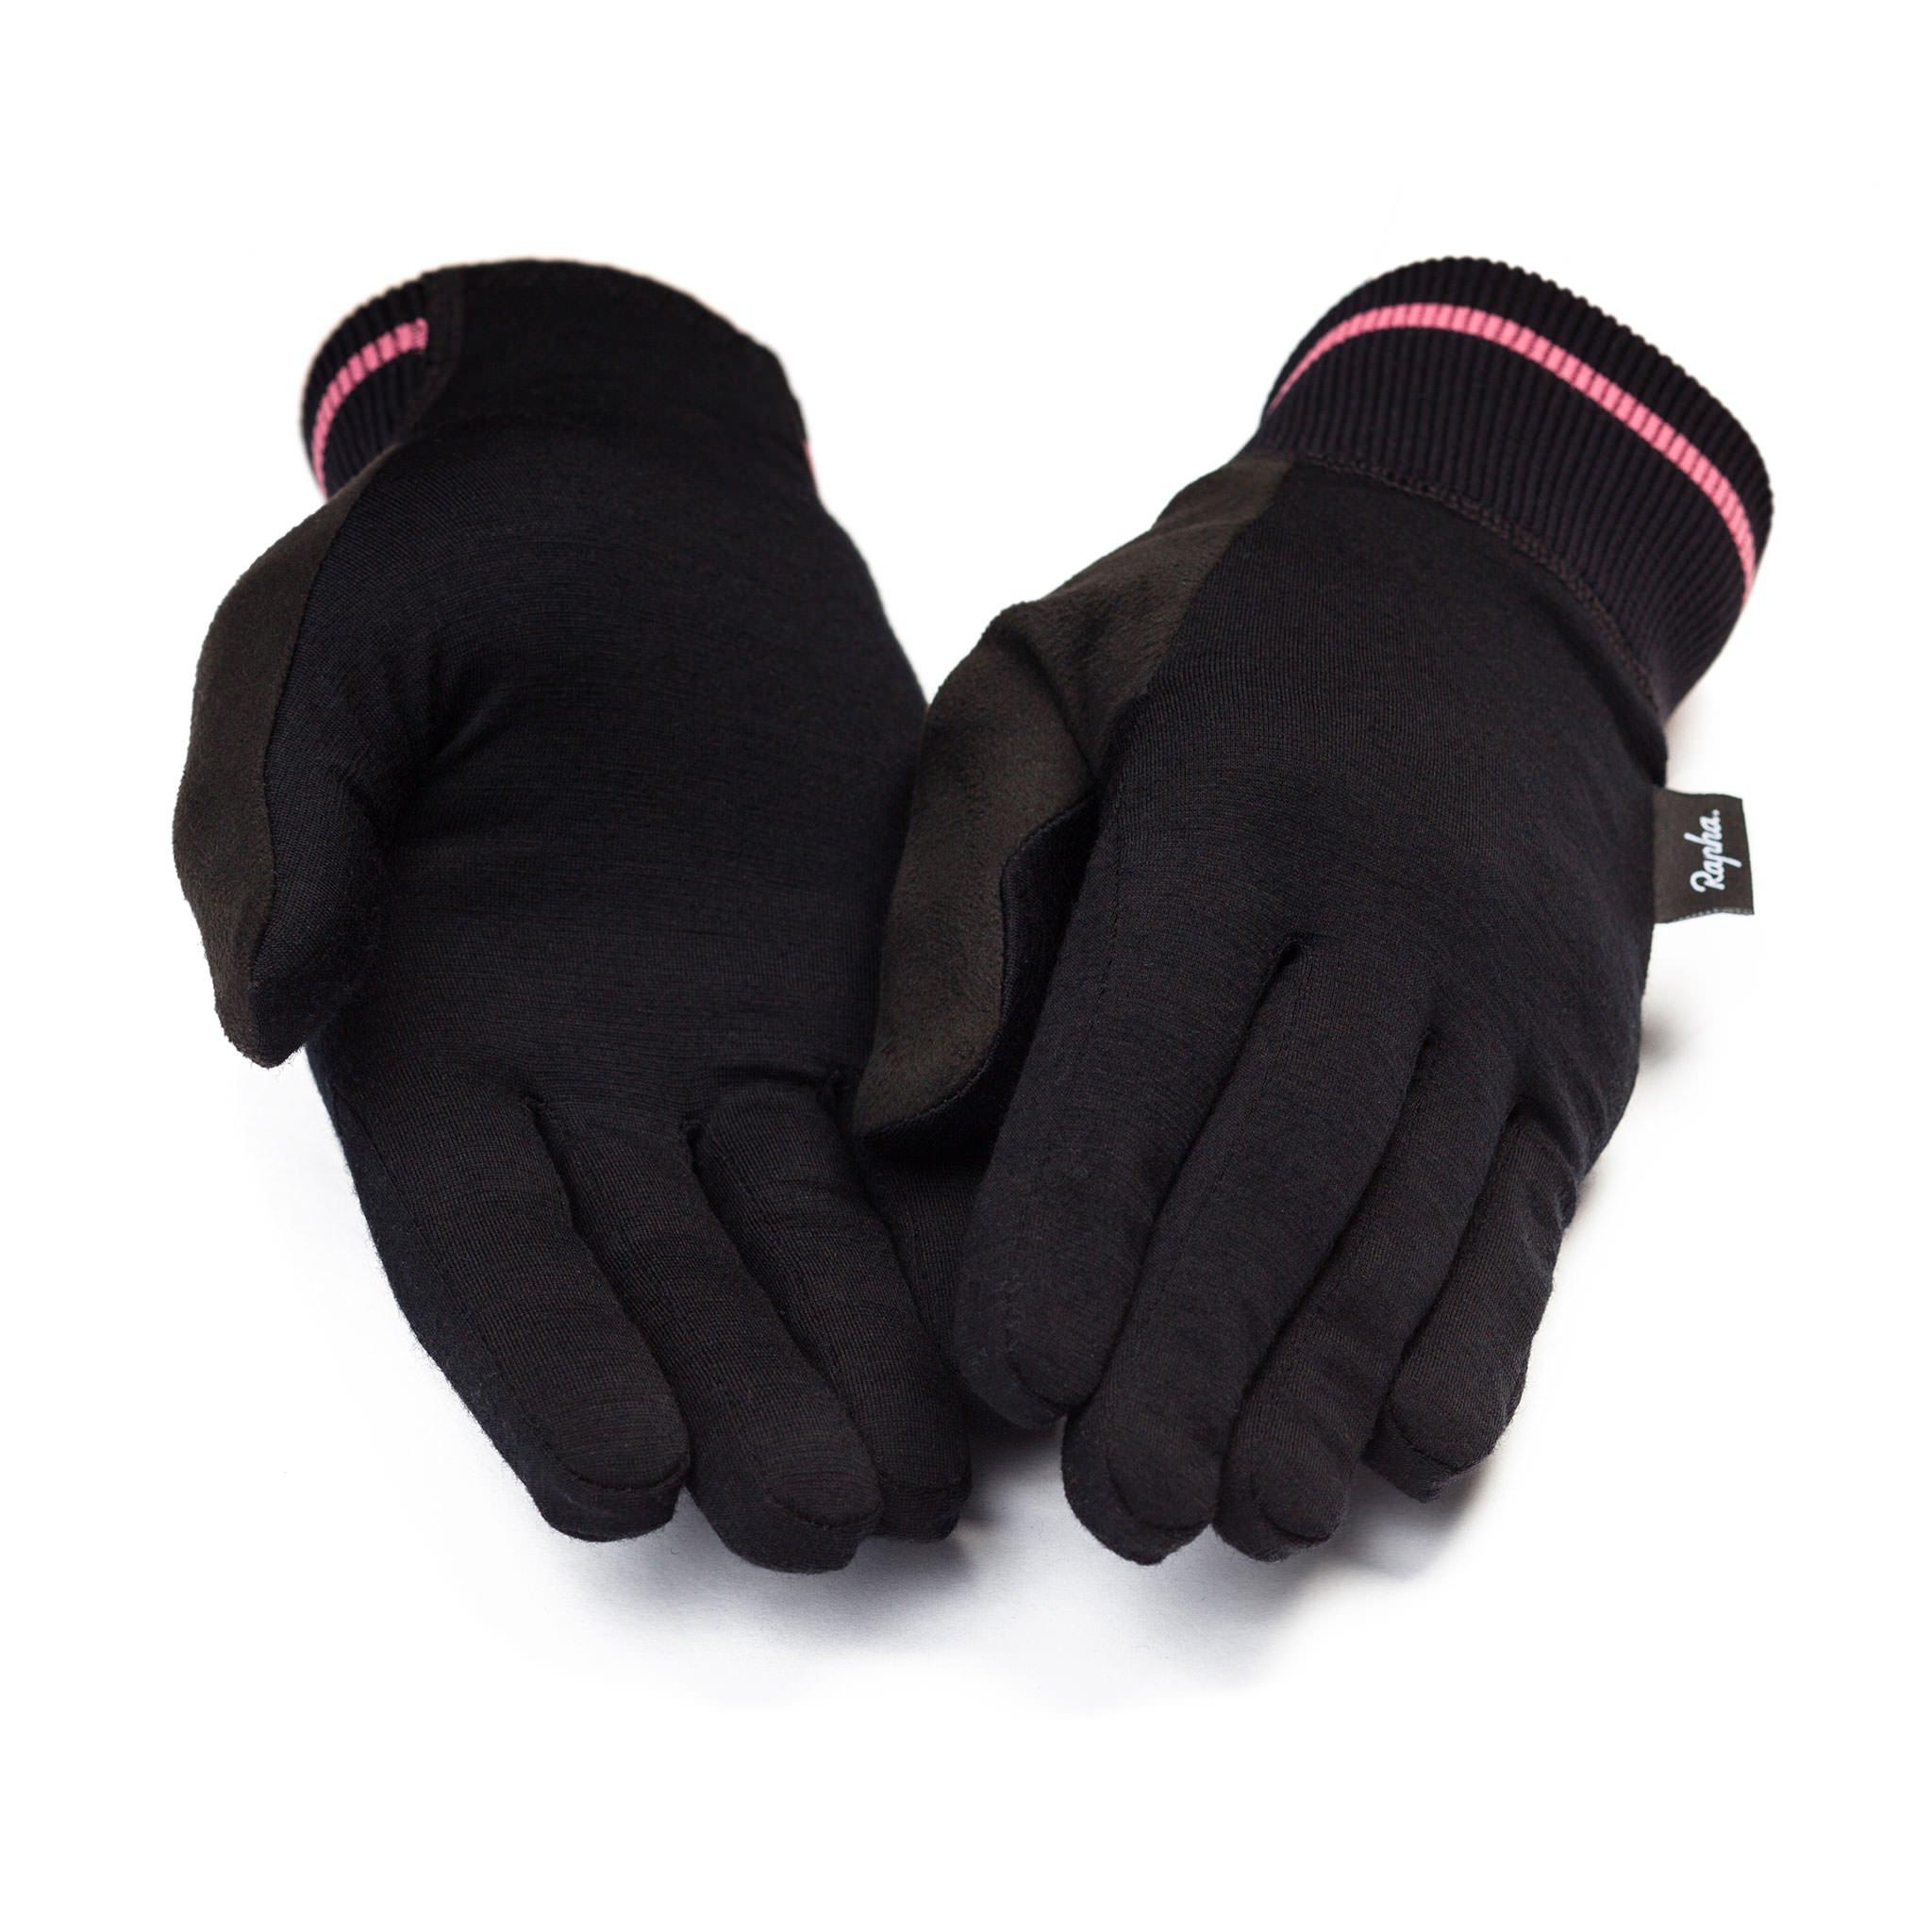 Merino Liner Cycling Gloves For Riding In Cold Winter Weather Rapha